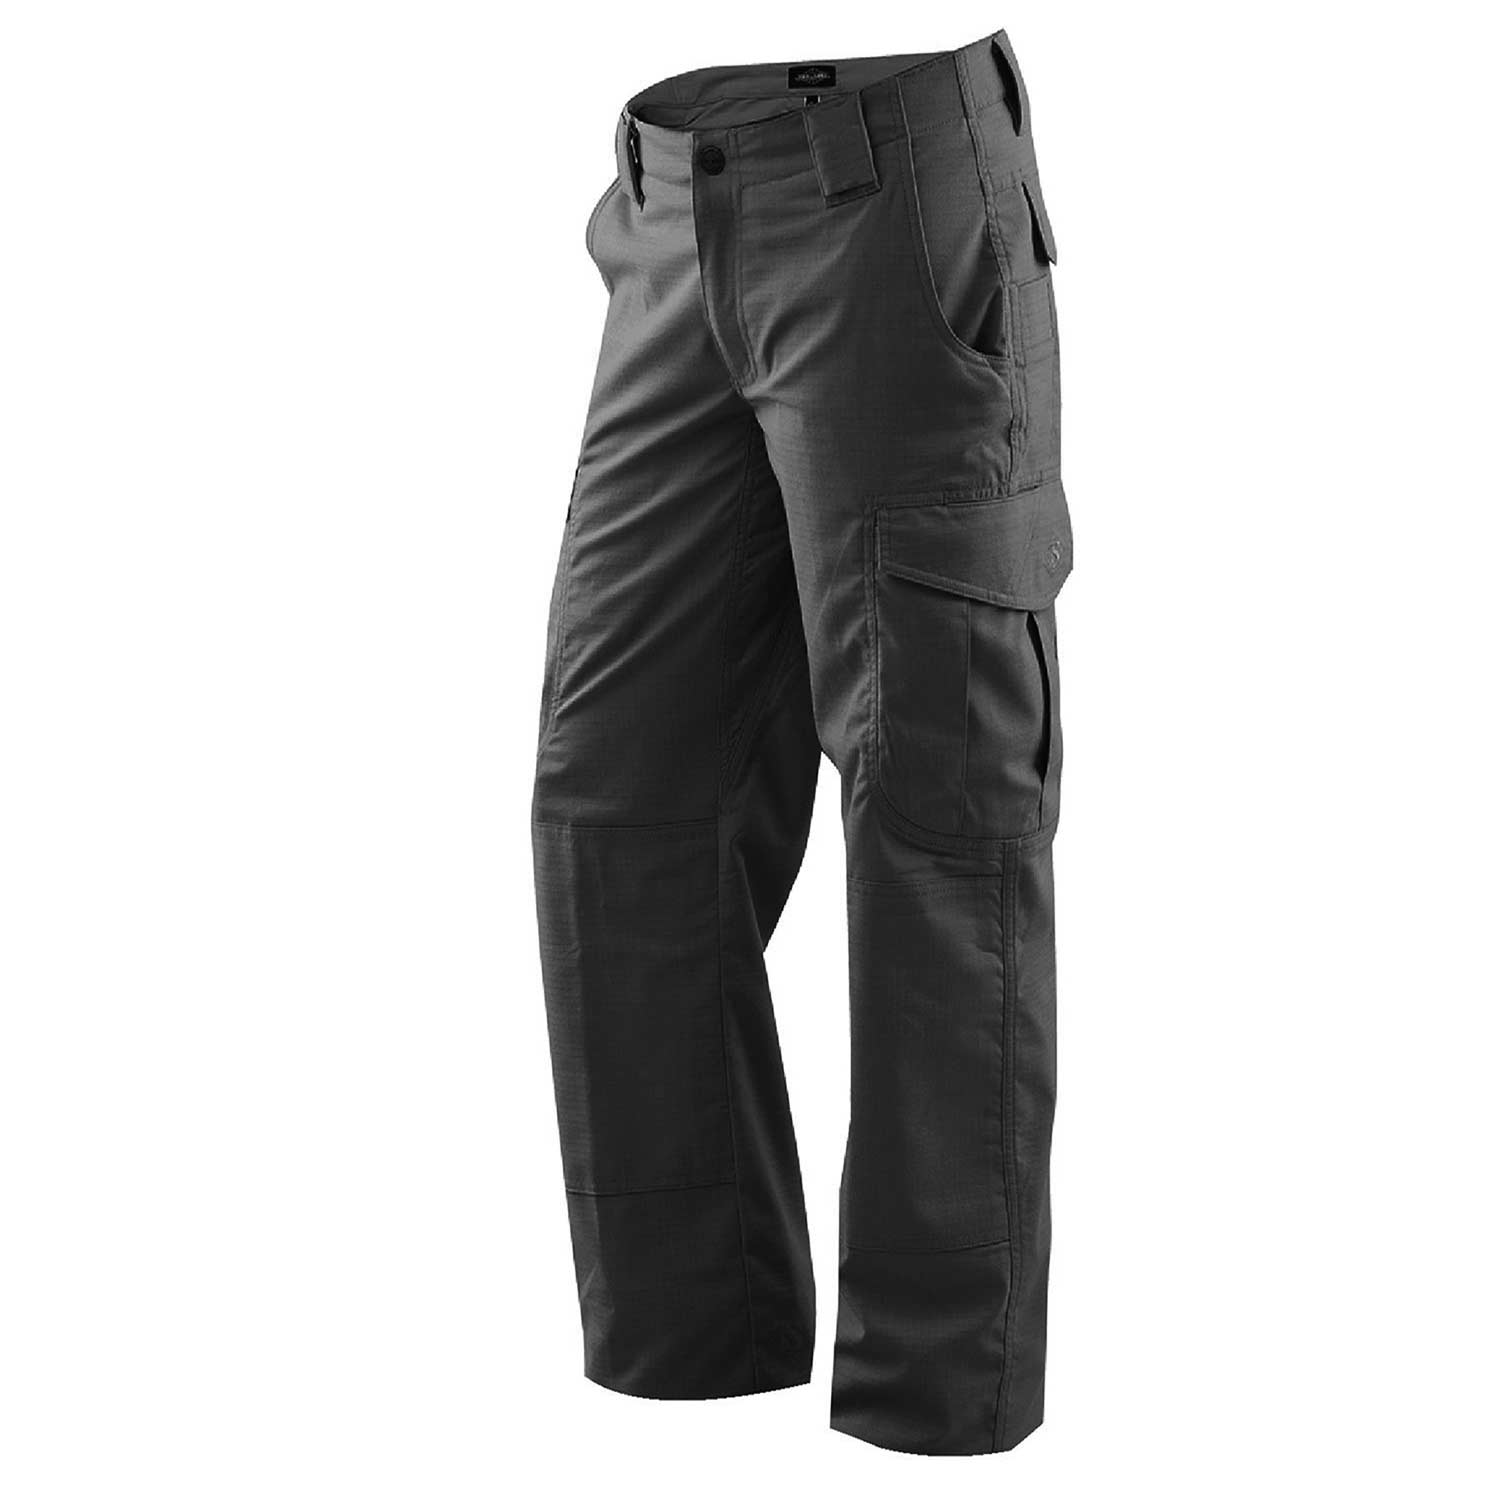 Tru-Spec 24-7 Ladies Ascent Pant